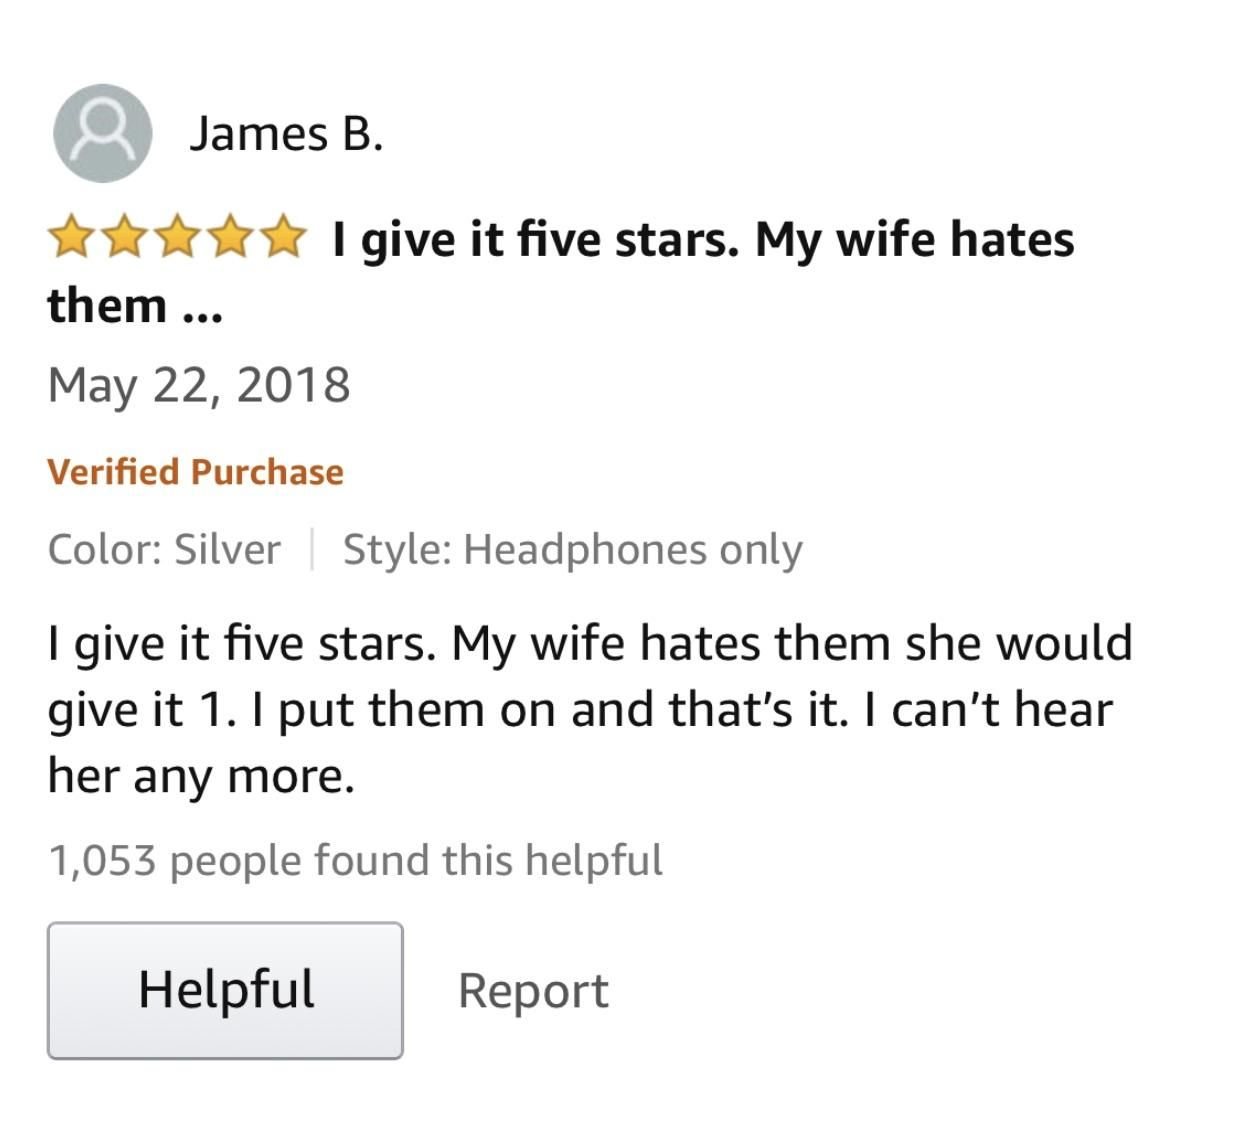 This 5-star verified review for noise canceling headphones